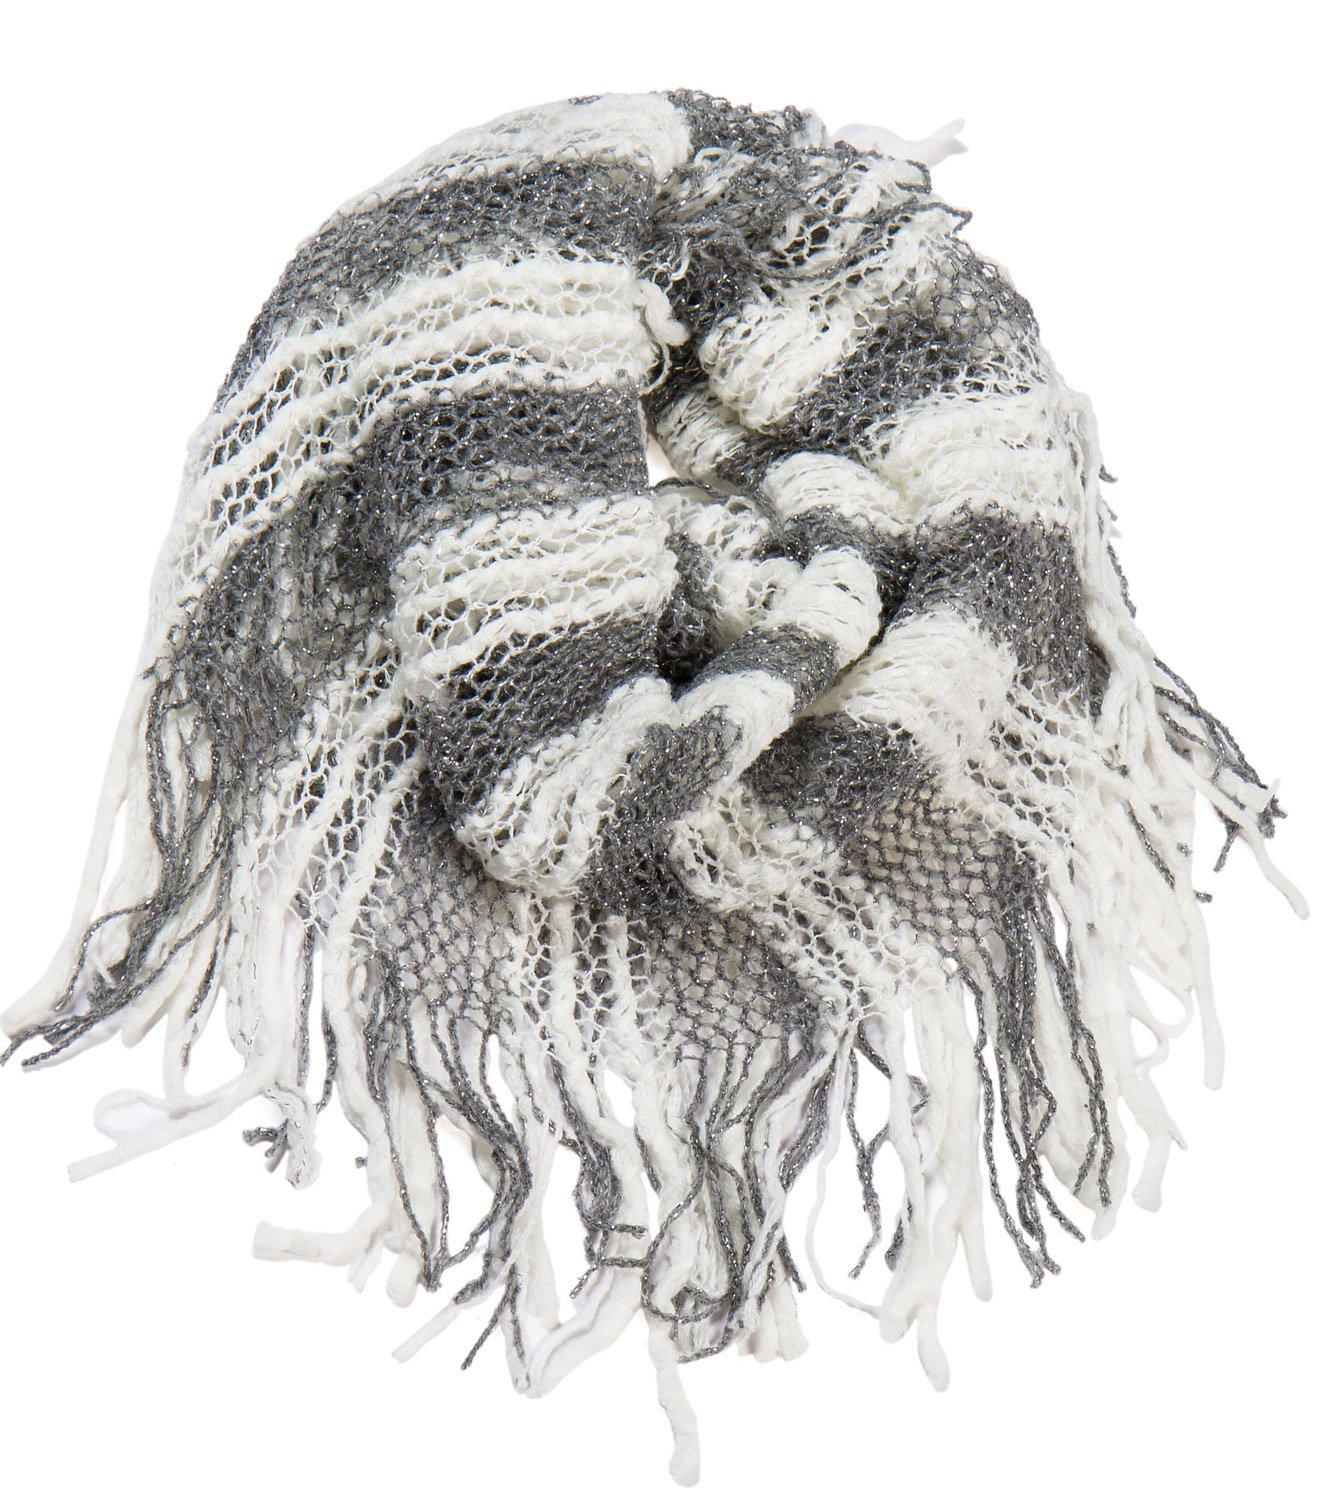 AOLOSHOW Winter Crochet Knit Fringe Infinity Loop Scarf, Various Styles & Colors Beige WNL-2582 - E Beige